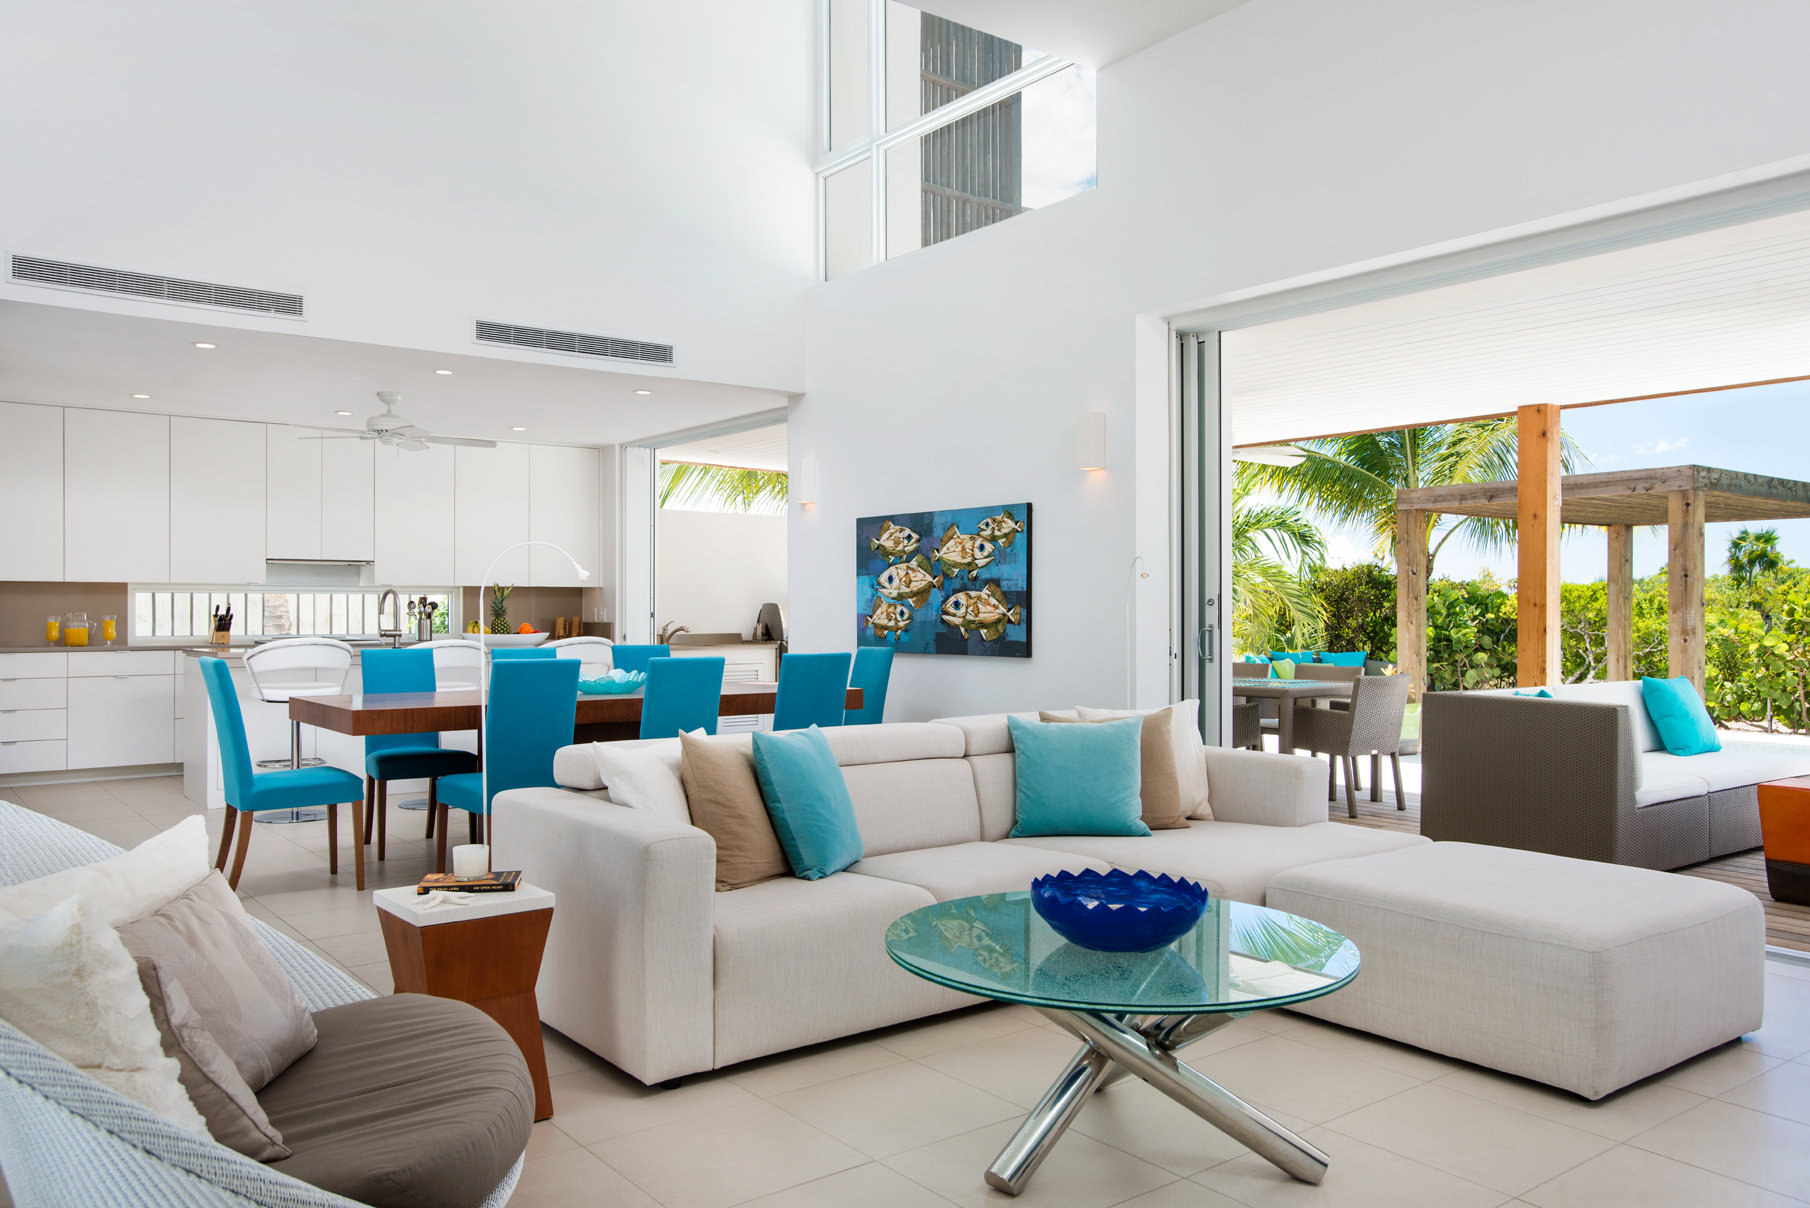 Single Family Home for Sale at Sunset Beach Villas - Design B Gardenview Leeward, Providenciales, TC Turks And Caicos Islands